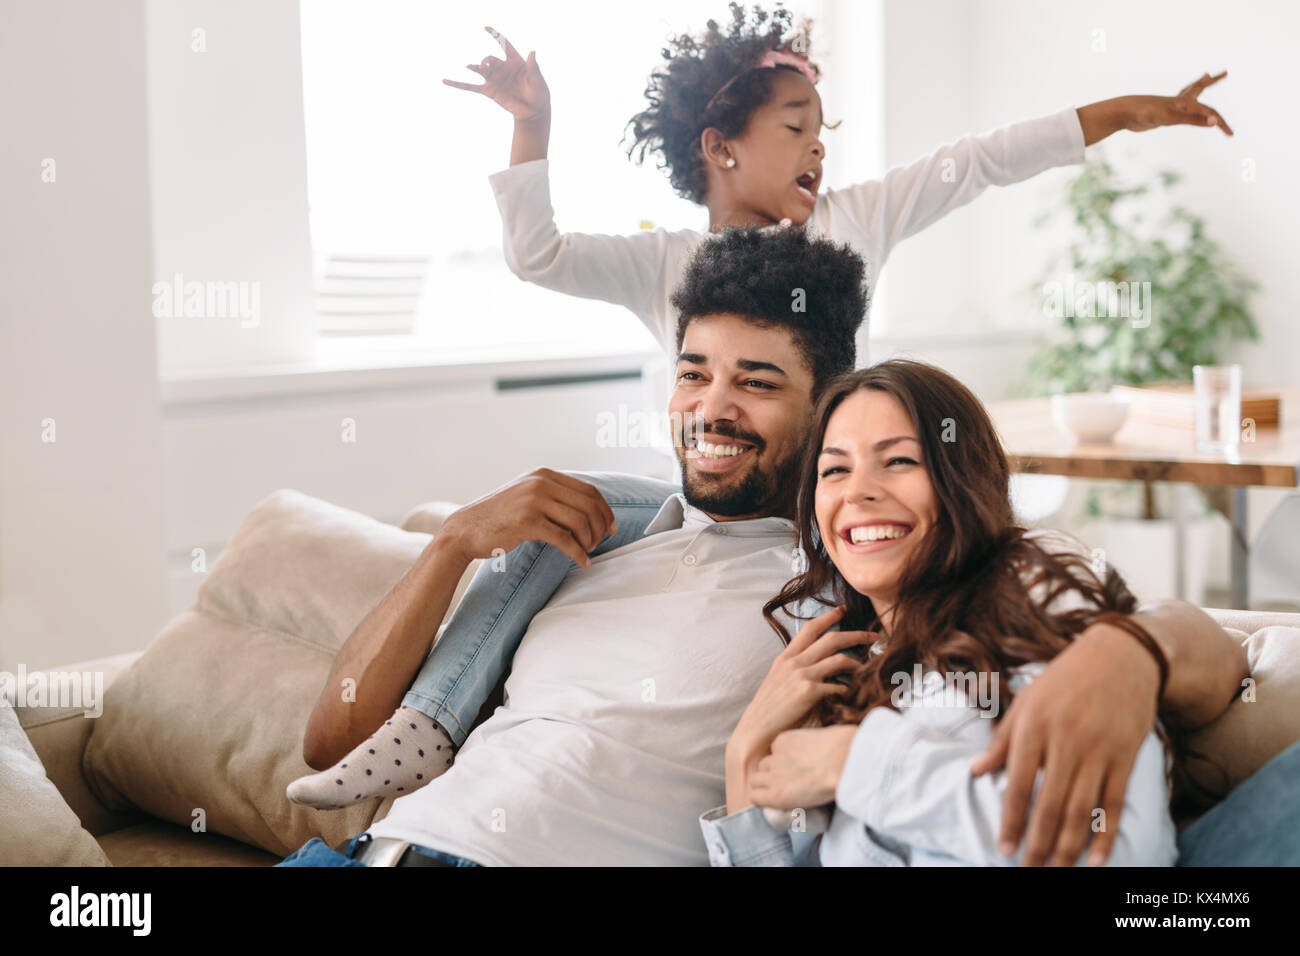 Family lifestyle portrait of a mum and dad with their kid - Stock Image